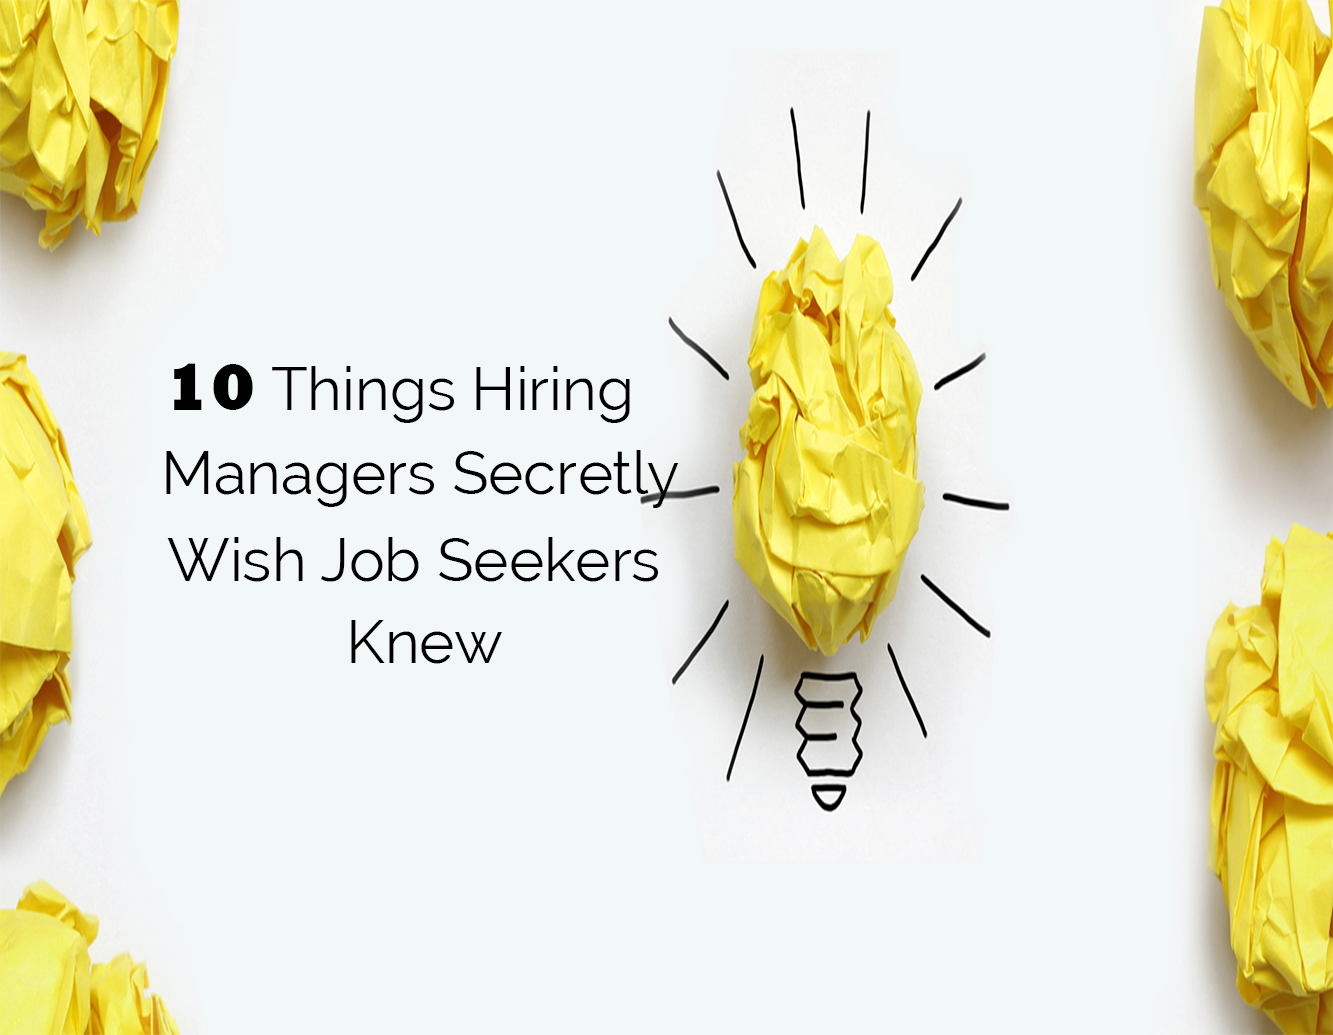 You are currently viewing 10 Things Hiring Managers Secretly Wish Job Seekers Knew